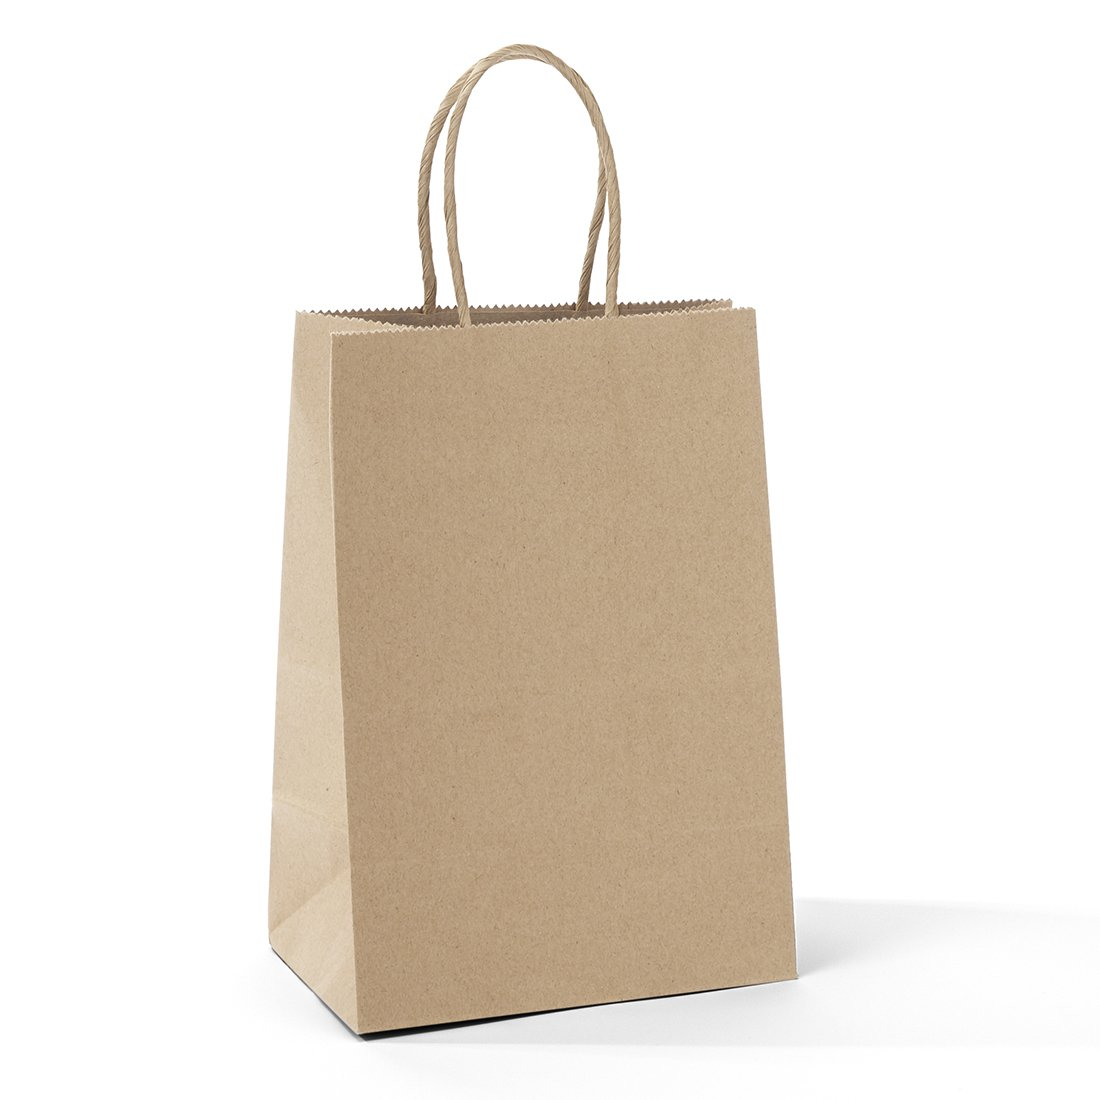 Halulu Brown Kraft Paper Bags - Gift Party Bags with handles - 25pc 5''x3.75''x8'' Shopping Bags